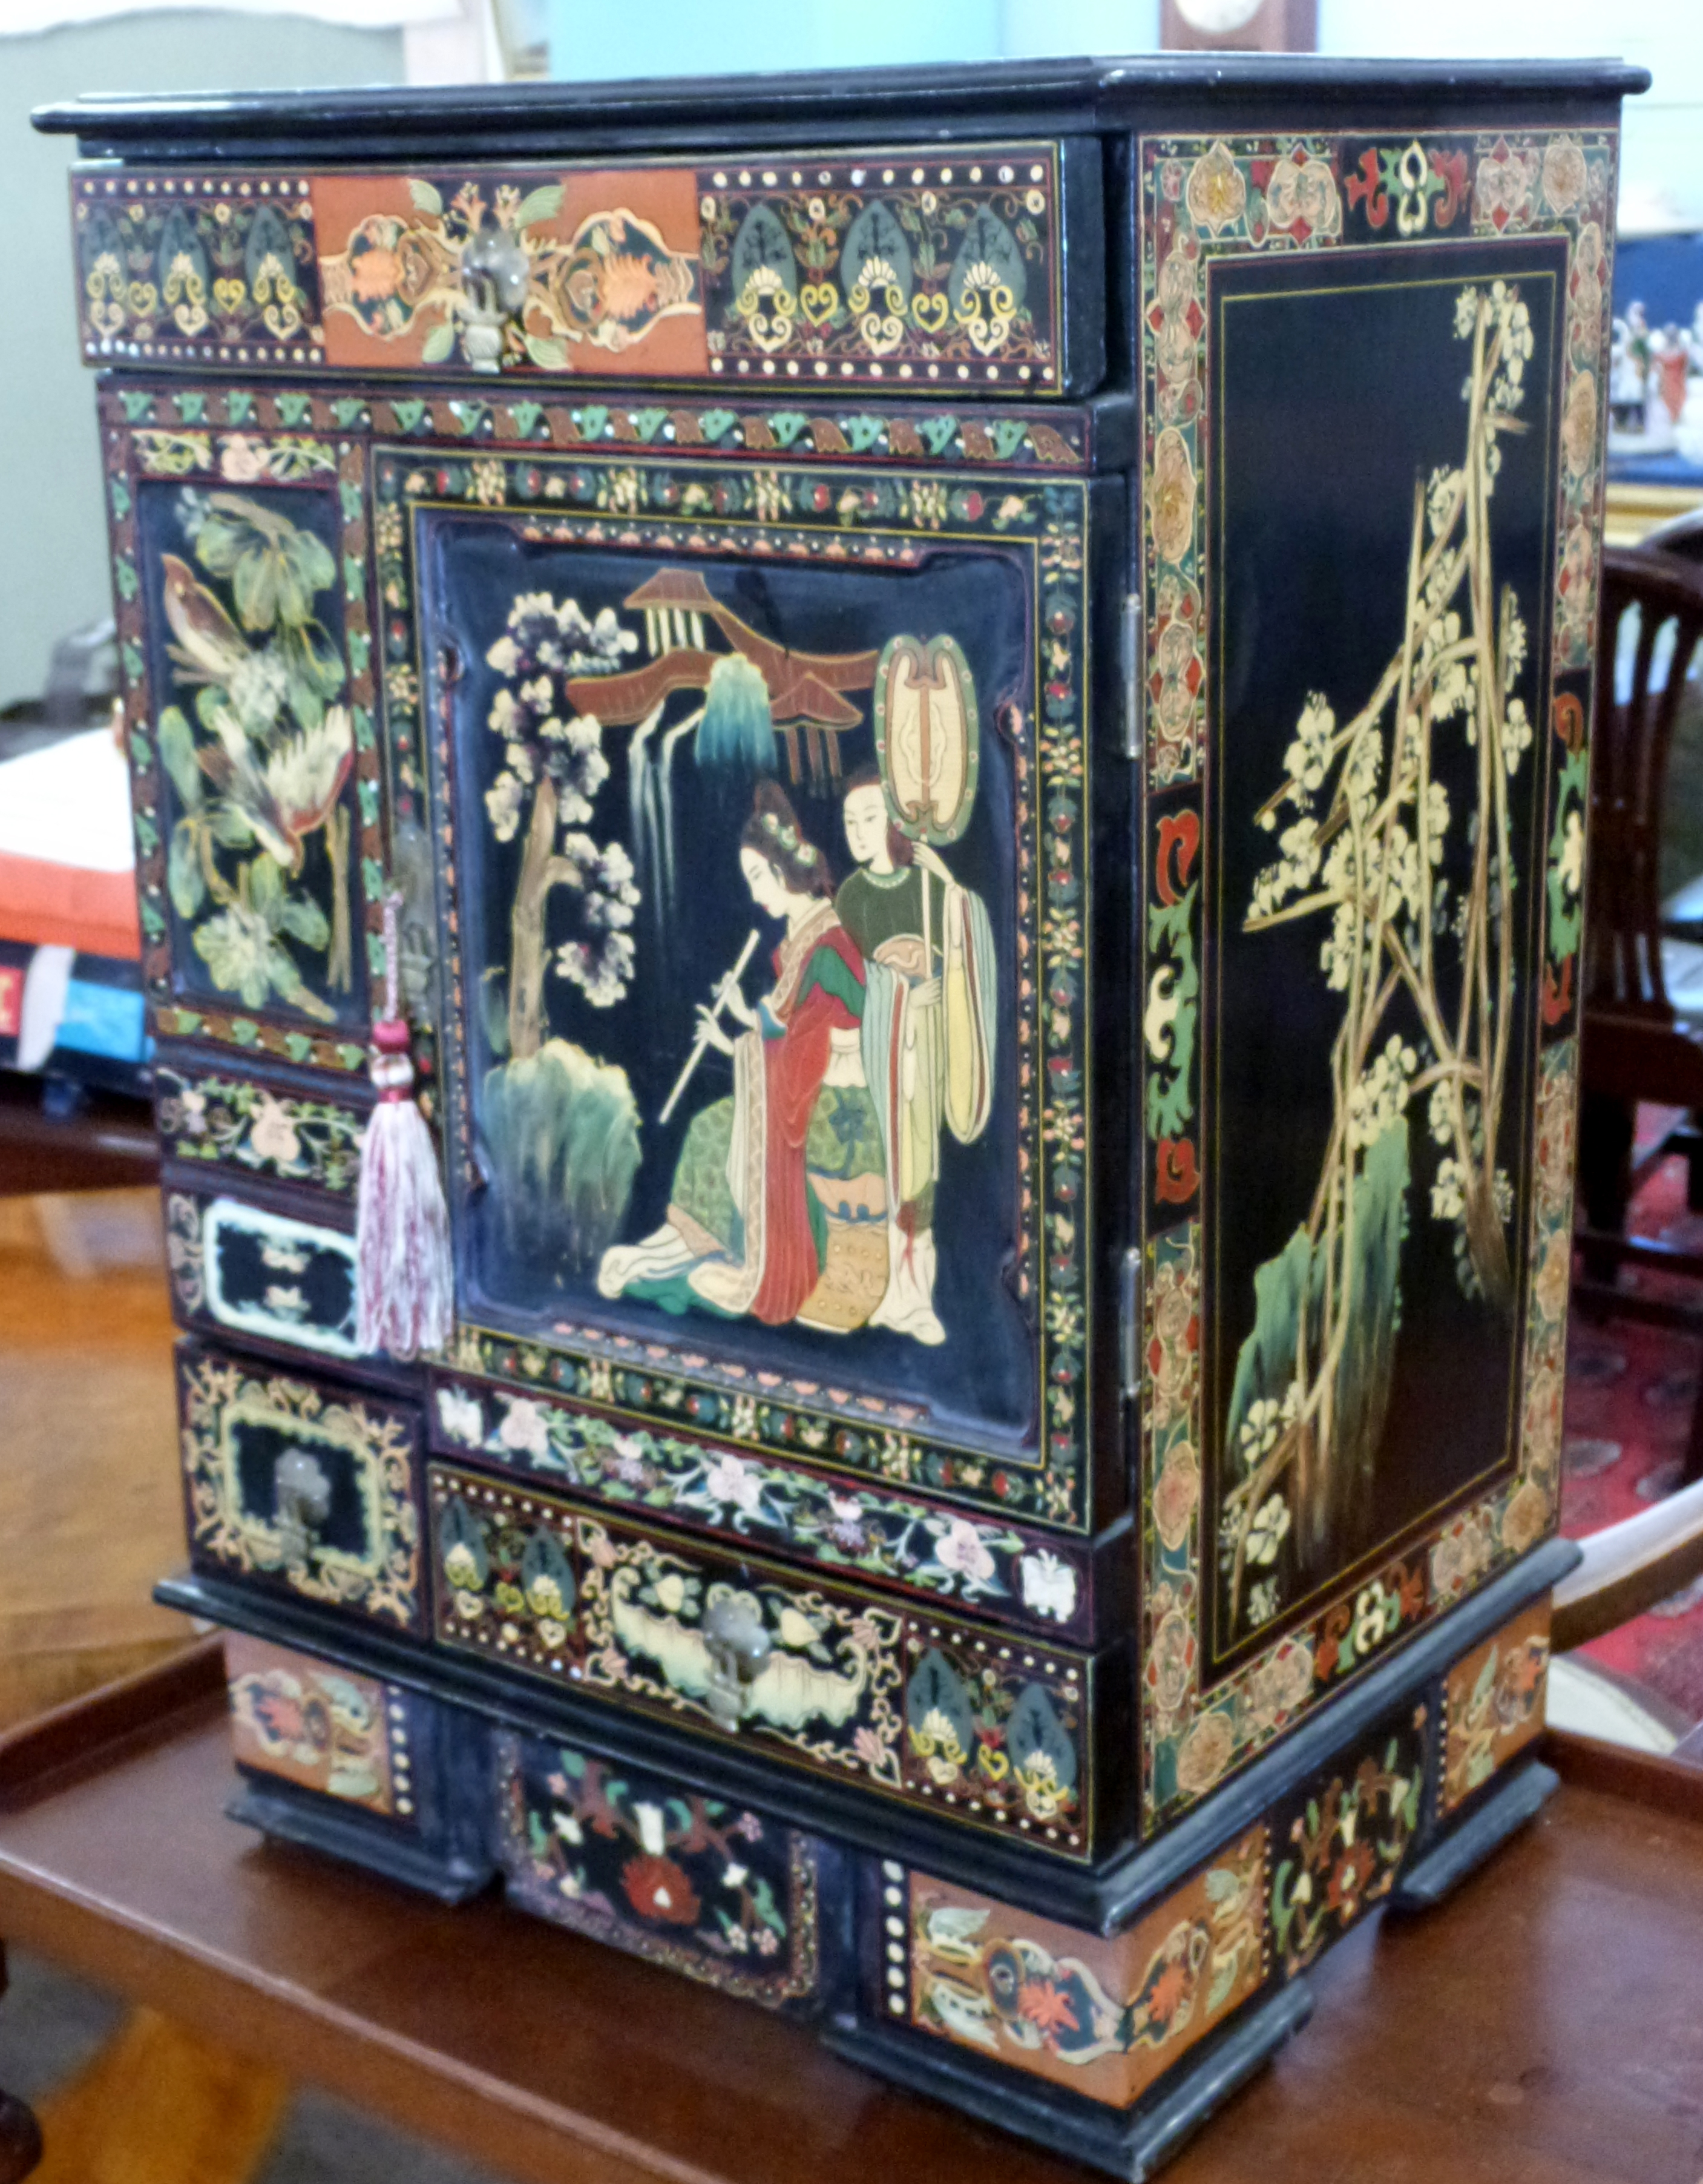 Mid-20th century Oriental style decorative table cabinet with painted scenes of Japanese figures, - Image 2 of 3